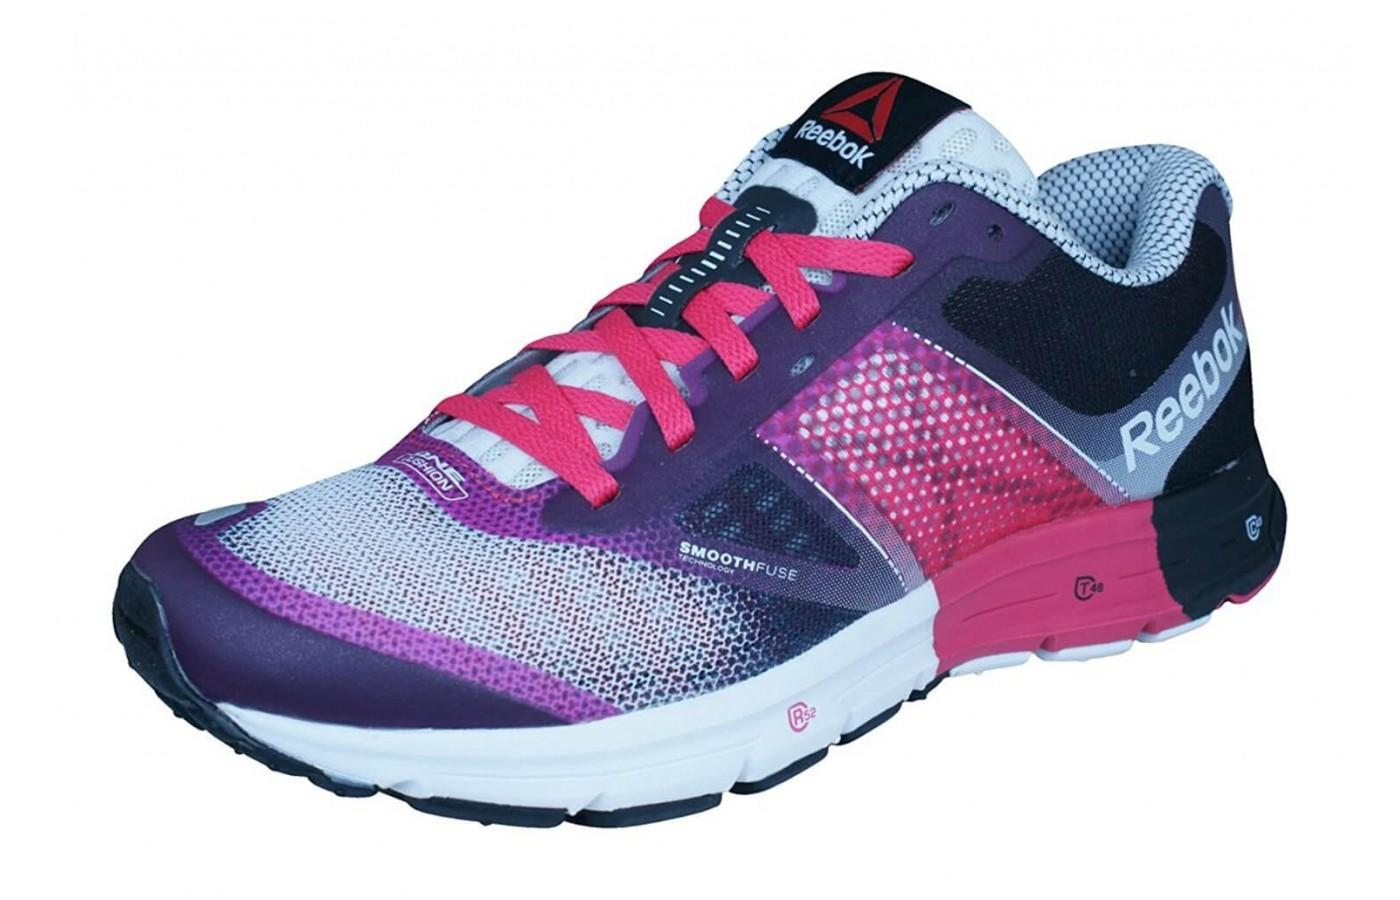 6f343514f5ef The Reebok Cushion One 2.0 is a cushioned shoe for the long distance runner.